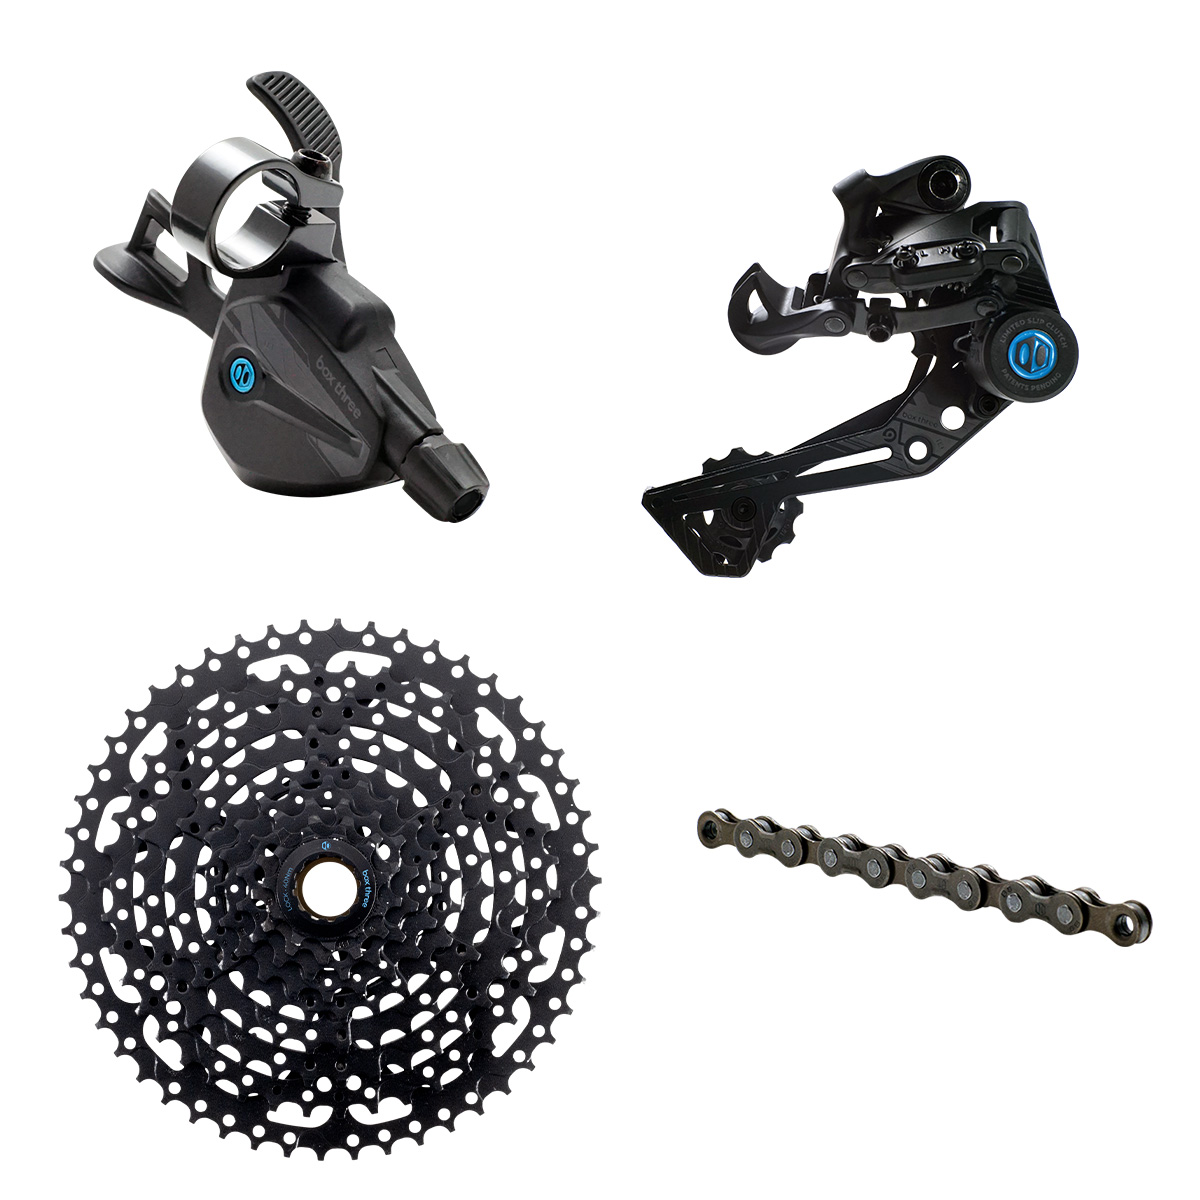 BOX Three Prime 9 X-Wide Groupset, Multi Shift